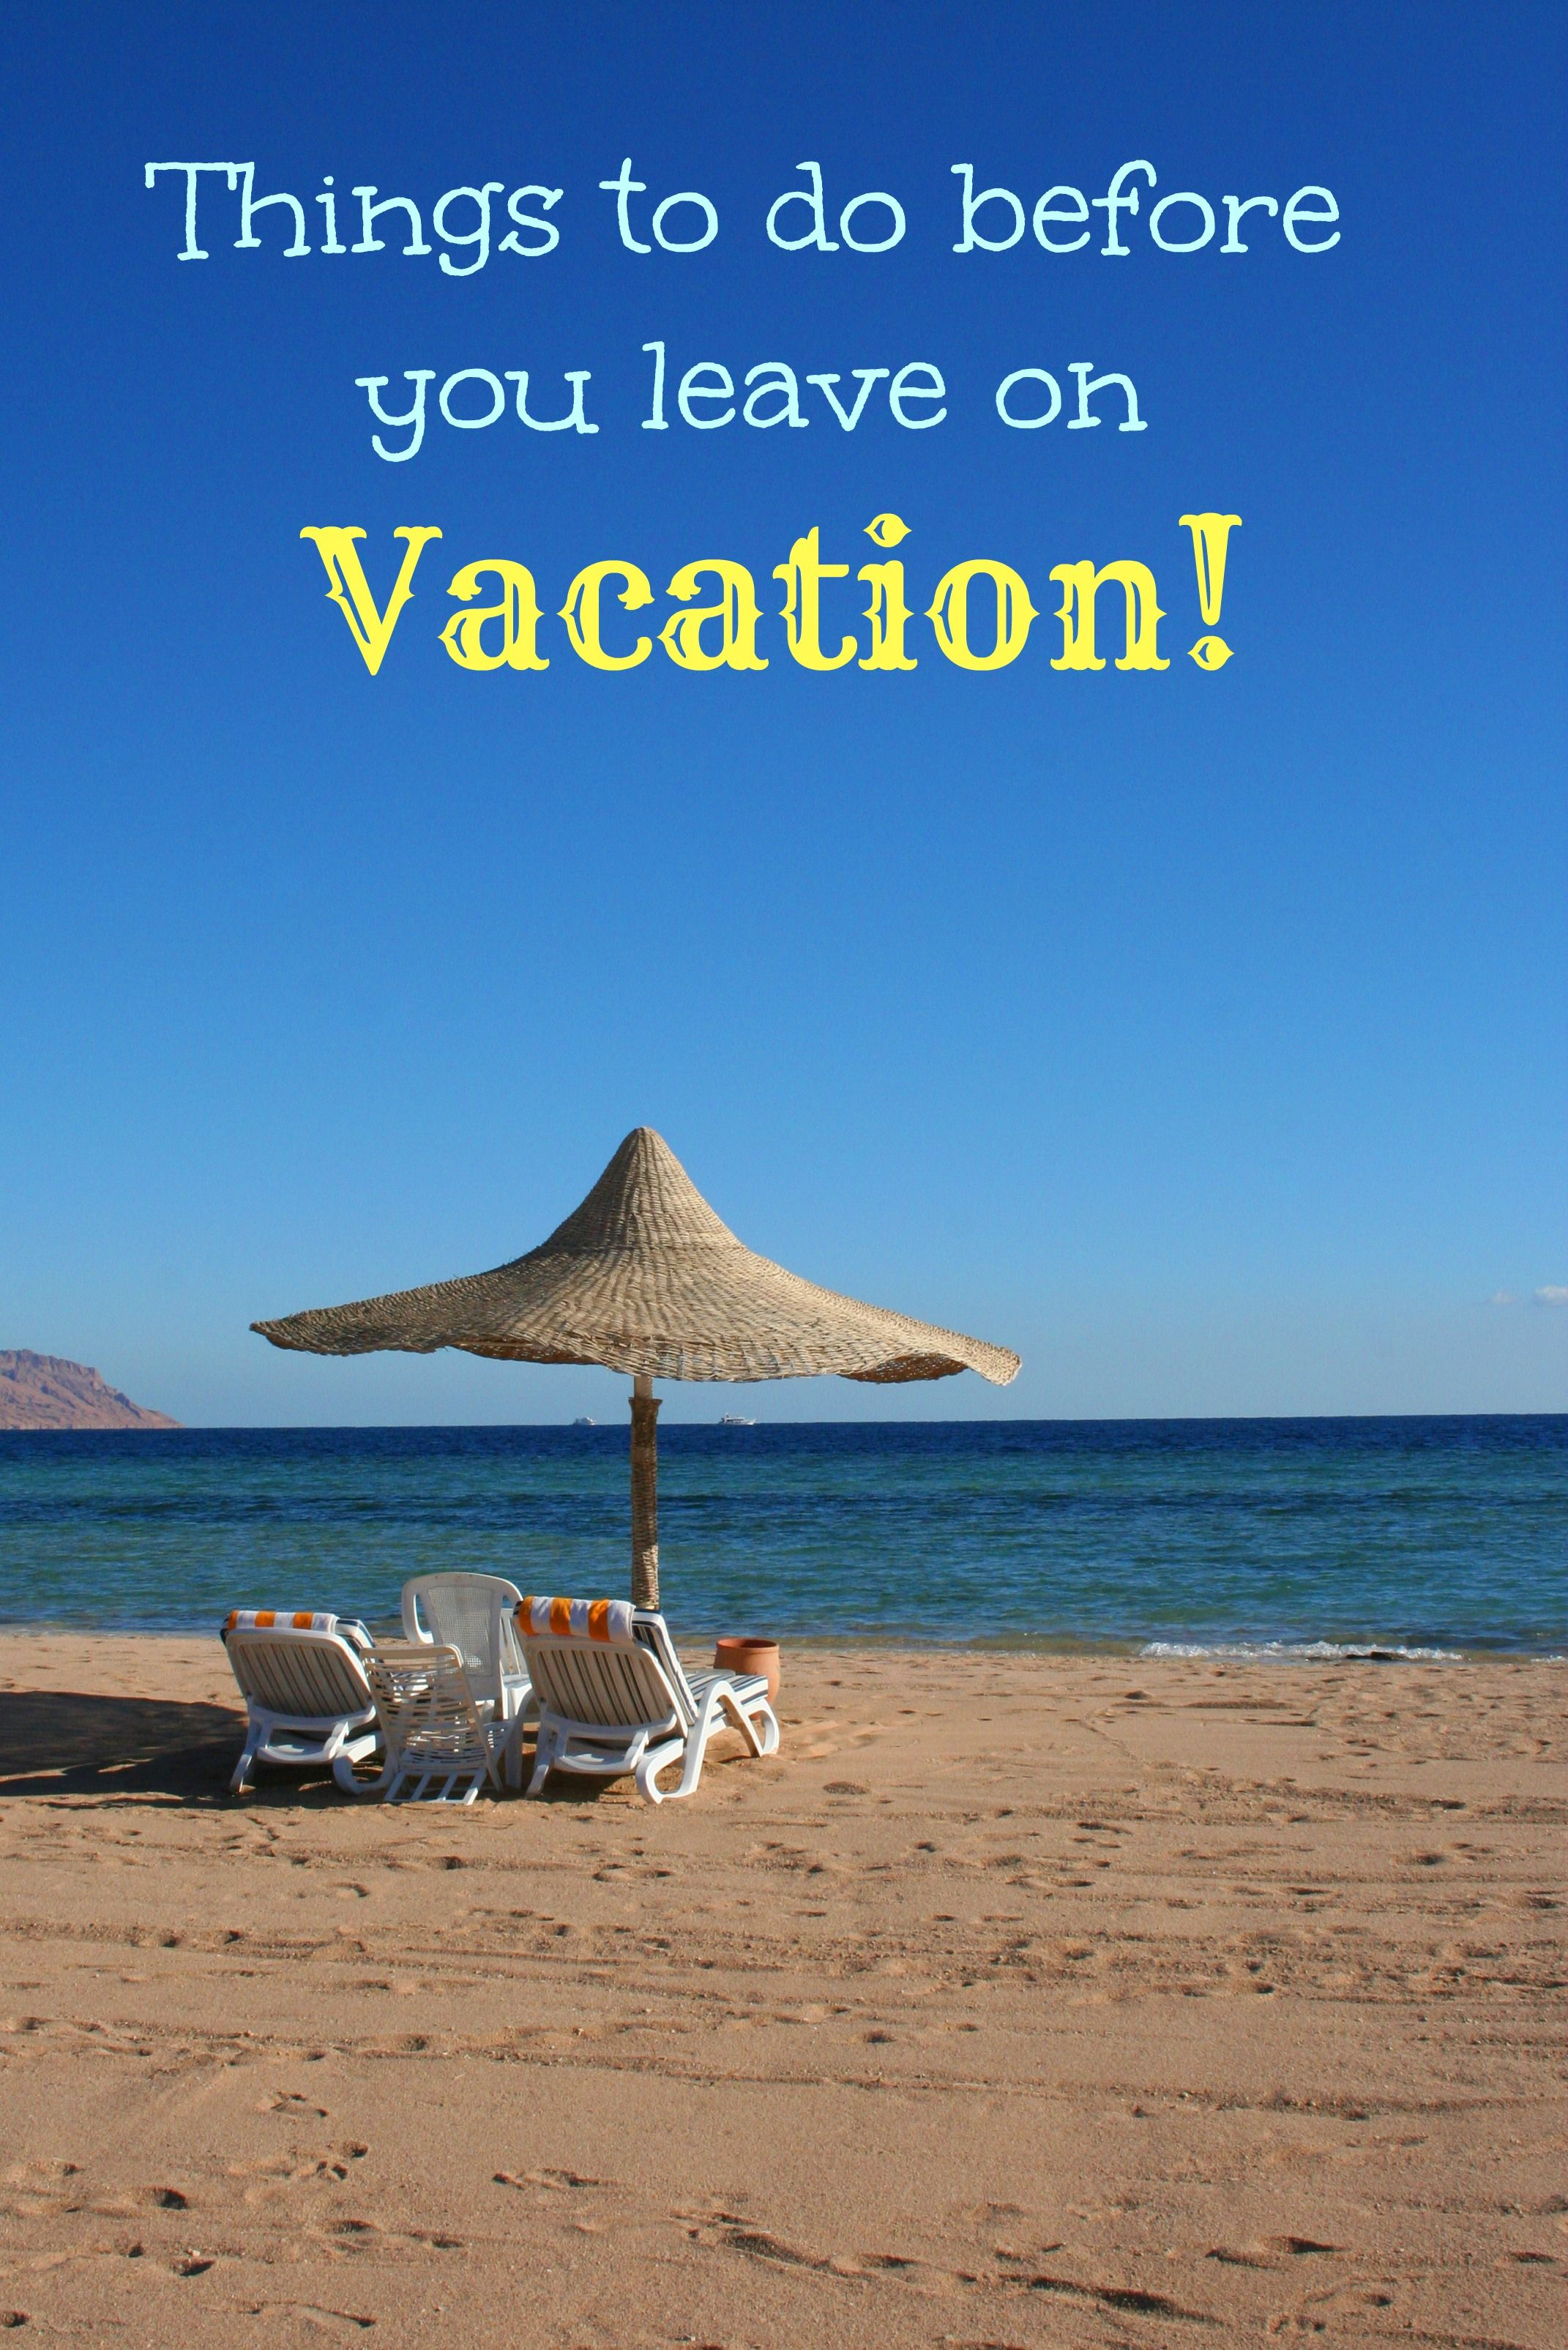 4 Things To Do Before Vacation To Make Coming Home Easier Timeshare Vacation Trips Travel Tips